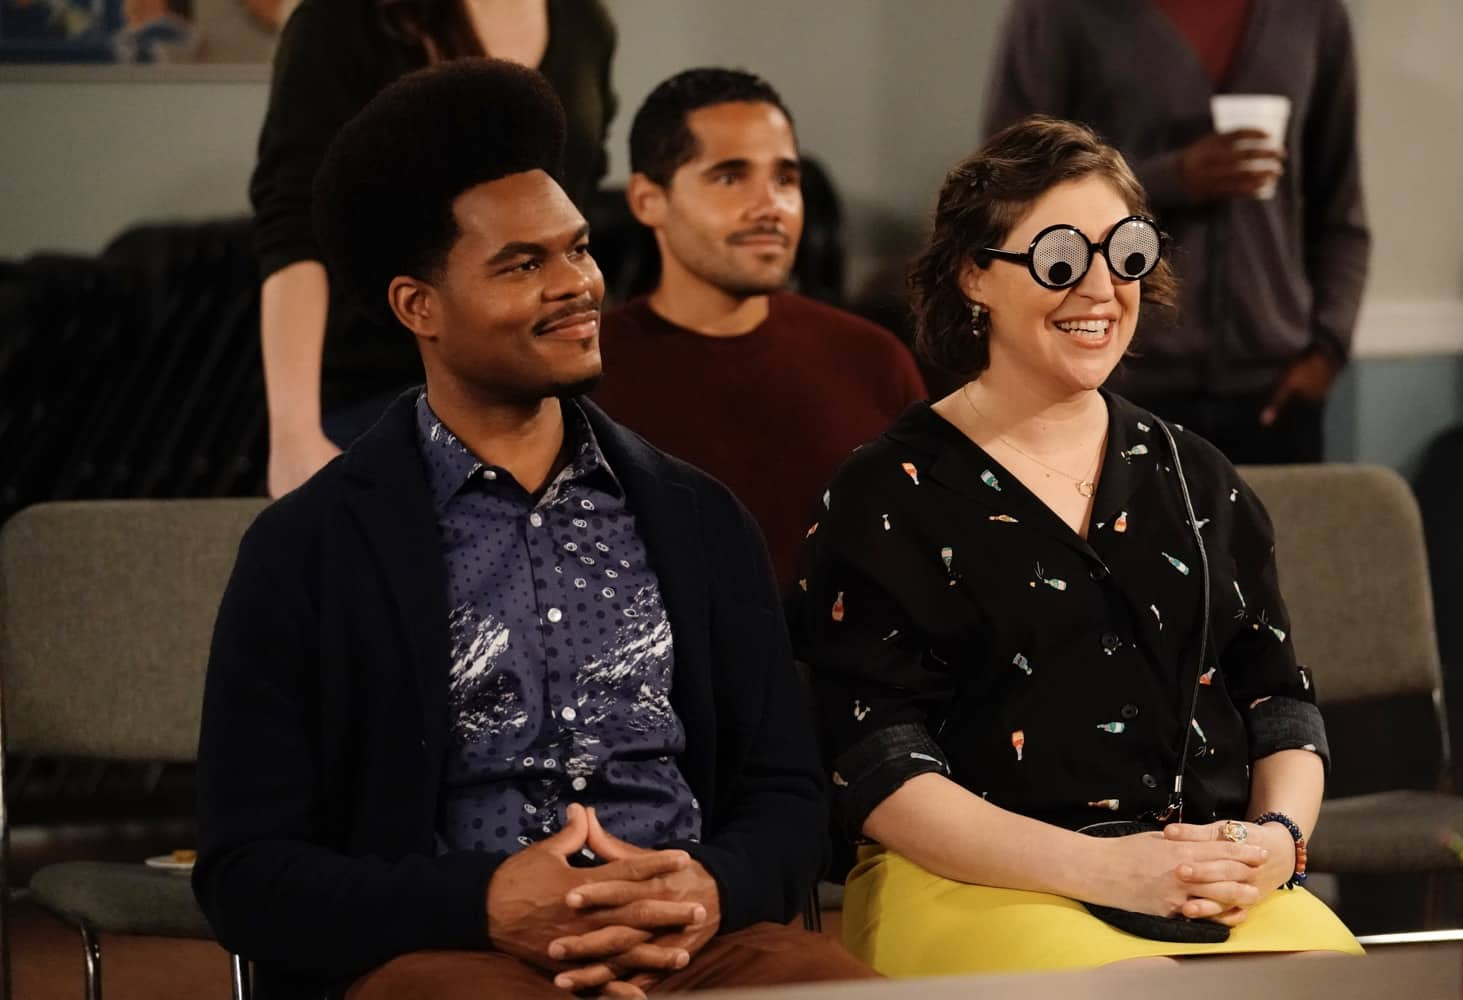 """CALL ME KAT Season 1 Episode 10 : L-R: Julian Gant and Mayim Bialik in the """"Business Council"""" episode of CALL ME KAT airing Thursday, March 4 (9:00-9:30 PM ET/PT) on FOX. ©2021 FOX MEDIA LLC. Cr. Cr: Lisa Rose/FOX."""